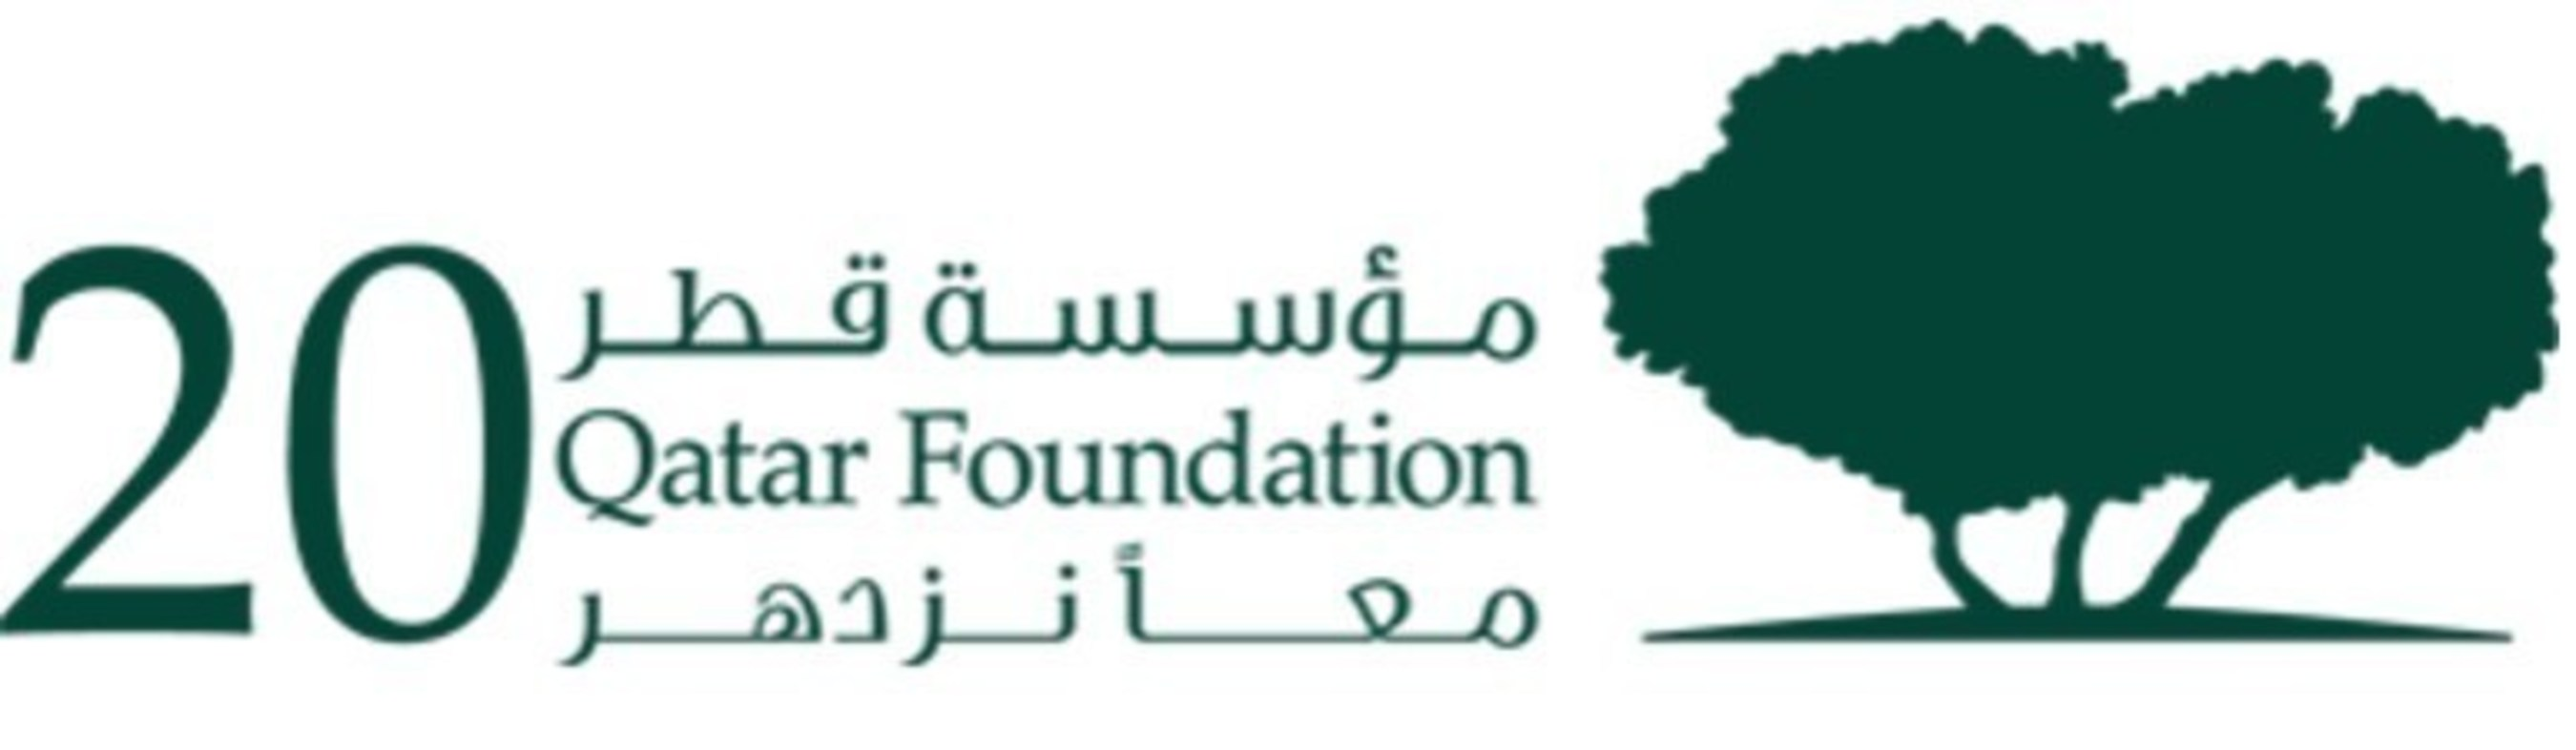 Ahmed Mohamed Accepts Scholarship to Qatar Foundation